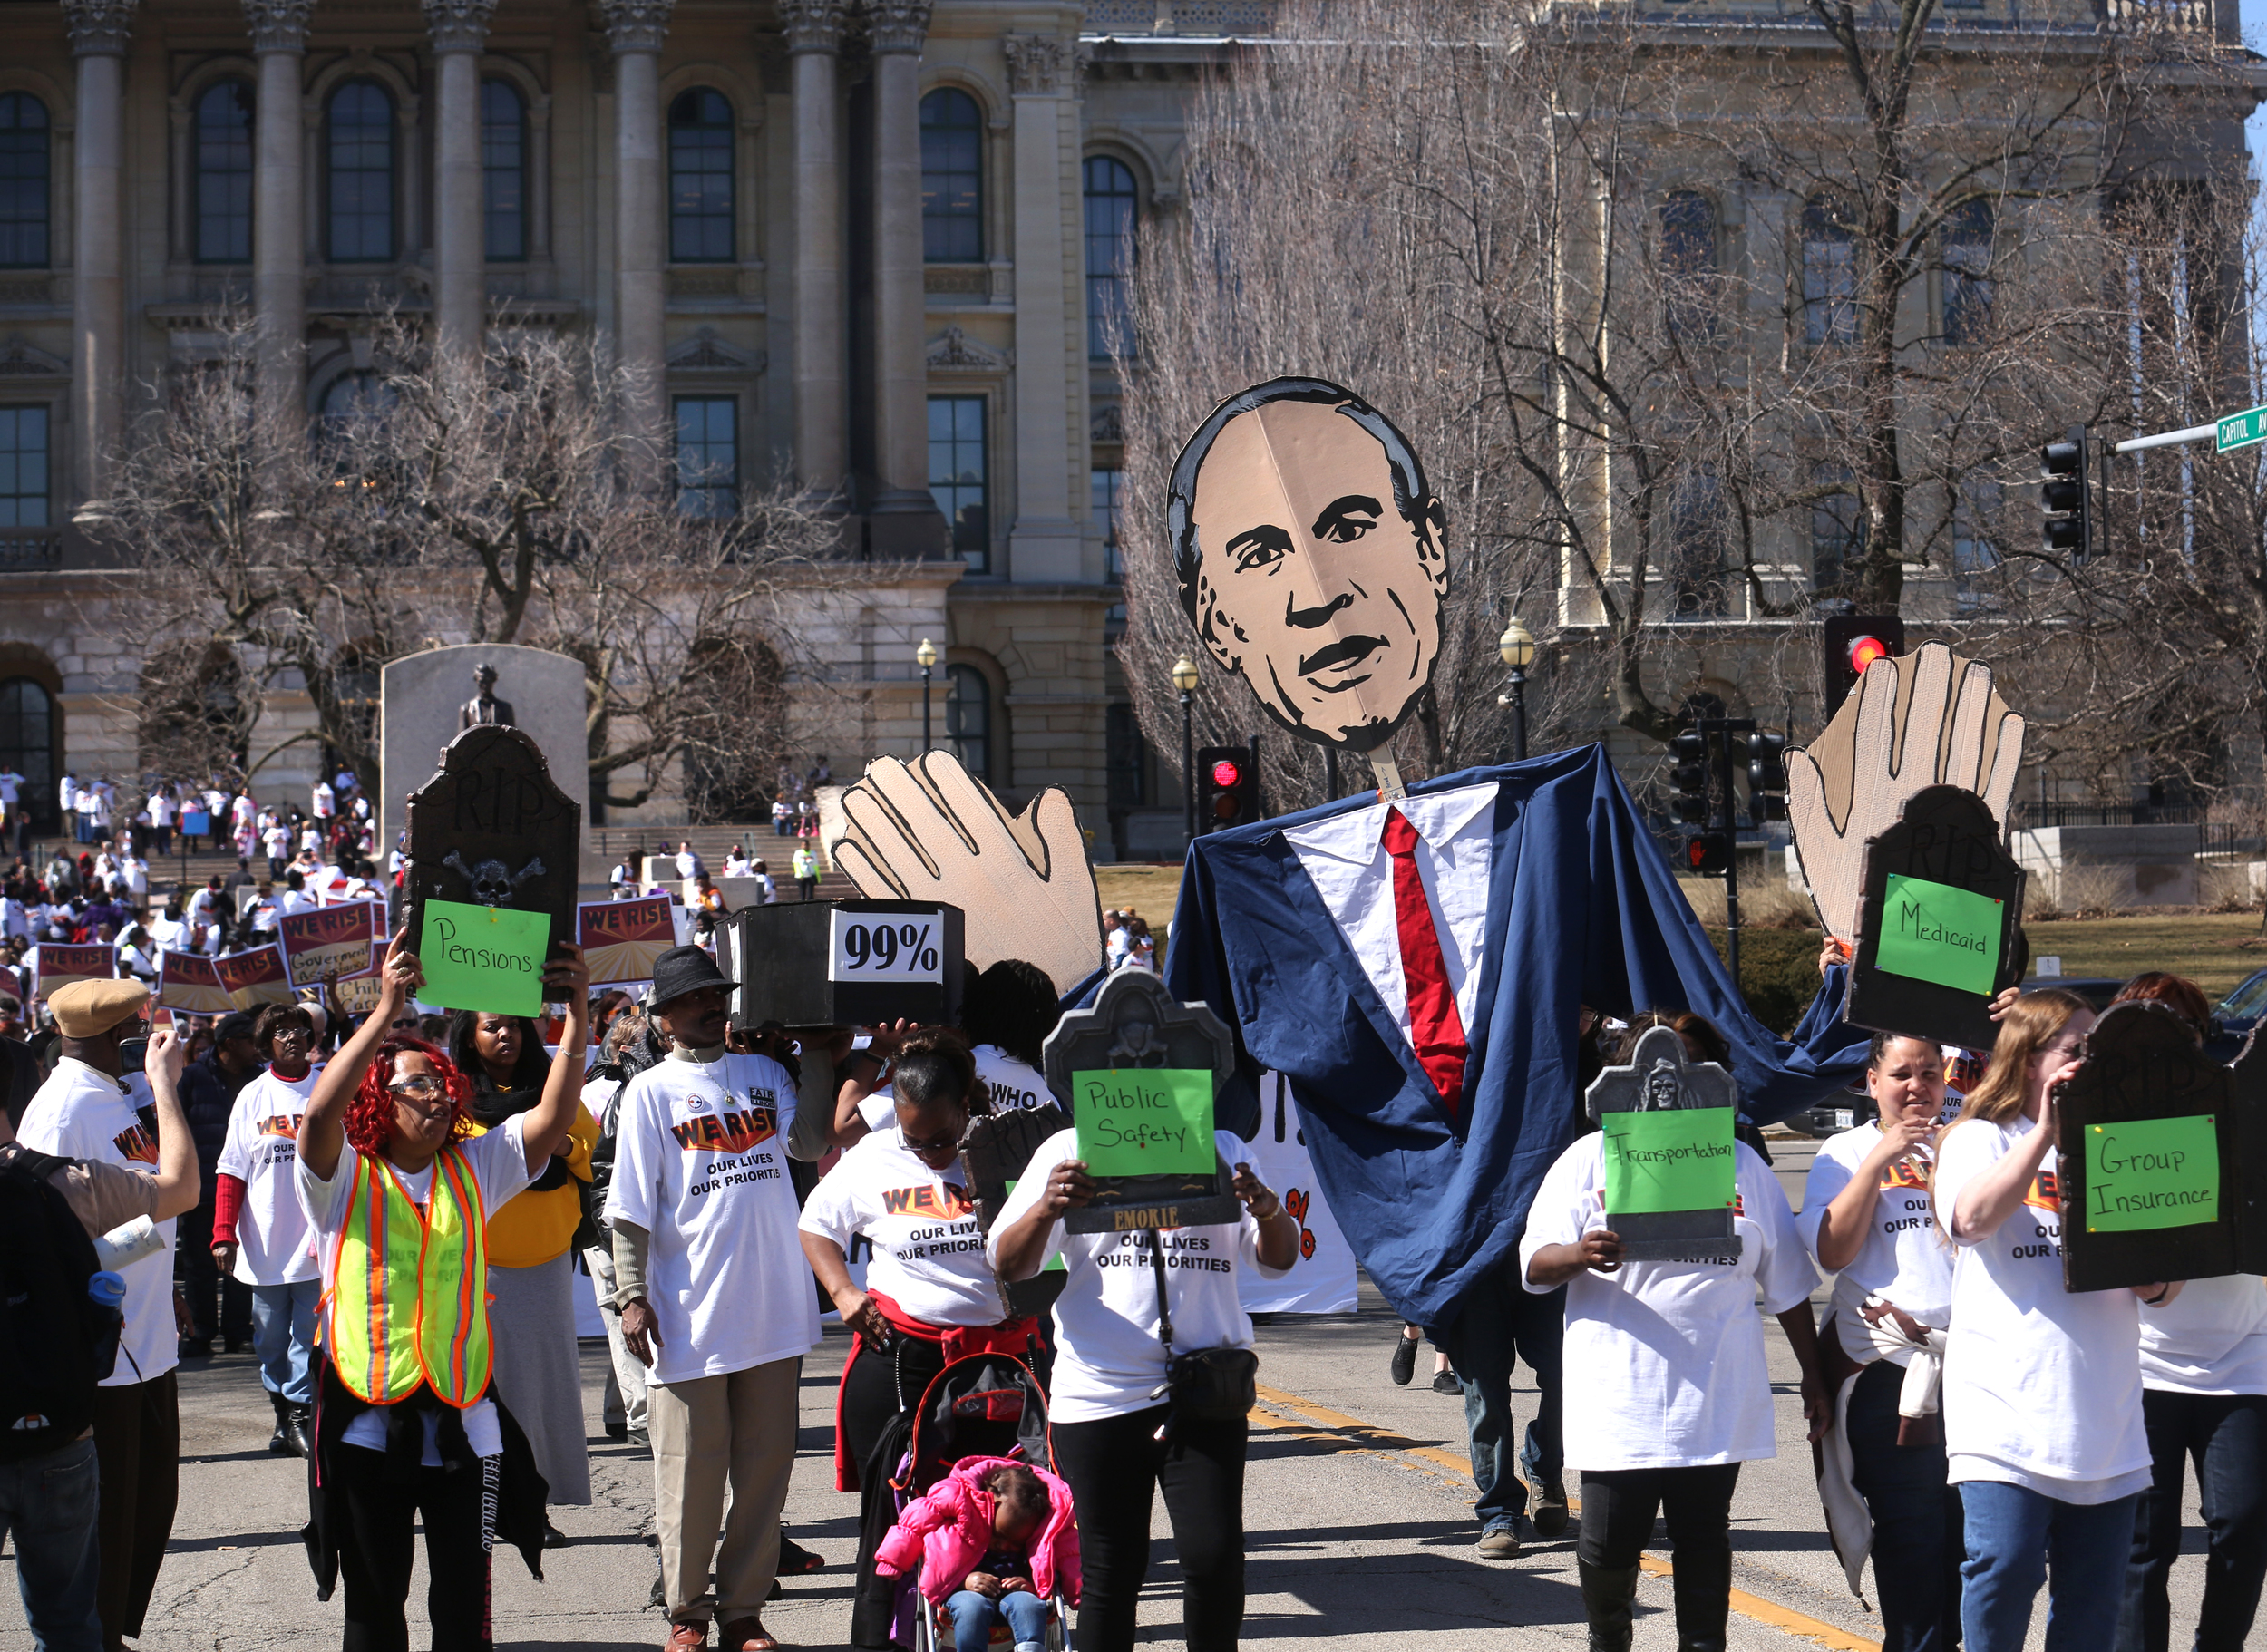 """Protestors walk with a large caricature of Gov. Bruce Rauner and a mock coffin east on Capitol Ave. towards the Governor's Mansion on Wed. March 11, 2015. As part of """"We Rise"""", a national day of action targeting state budget cuts, several thousand people from faith, community and labor organizations including adults, children and clergy affected by Gov. Bruce Rauner's proposed cuts gathered in Springfield to protest. The event began with a rally inside the Capitol building followed by a march to the governor's mansion where a mock """"funeral"""" for the """"99%"""" took place. David Spencer/The State Journal-Register"""